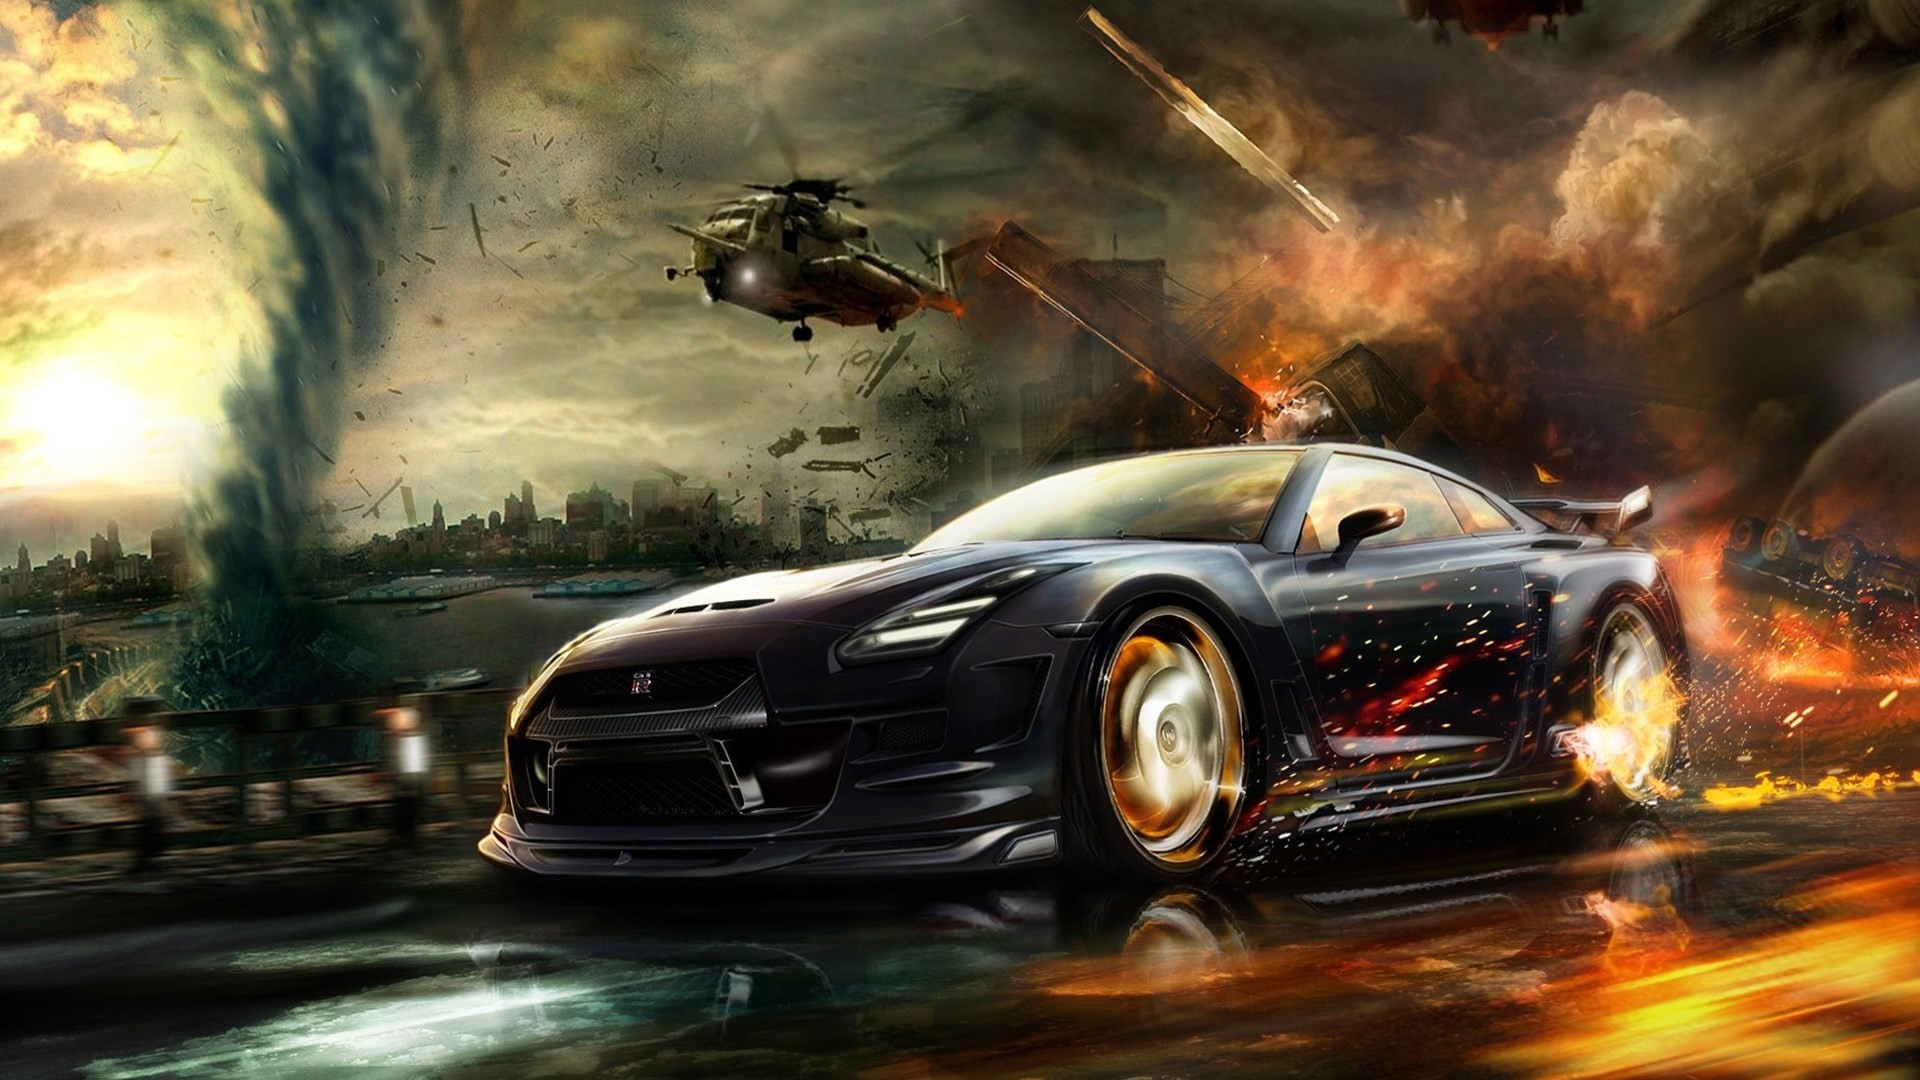 1920 x 1080 px nissan gtr wallpaper for mac computers by Greeshawn Stevenson